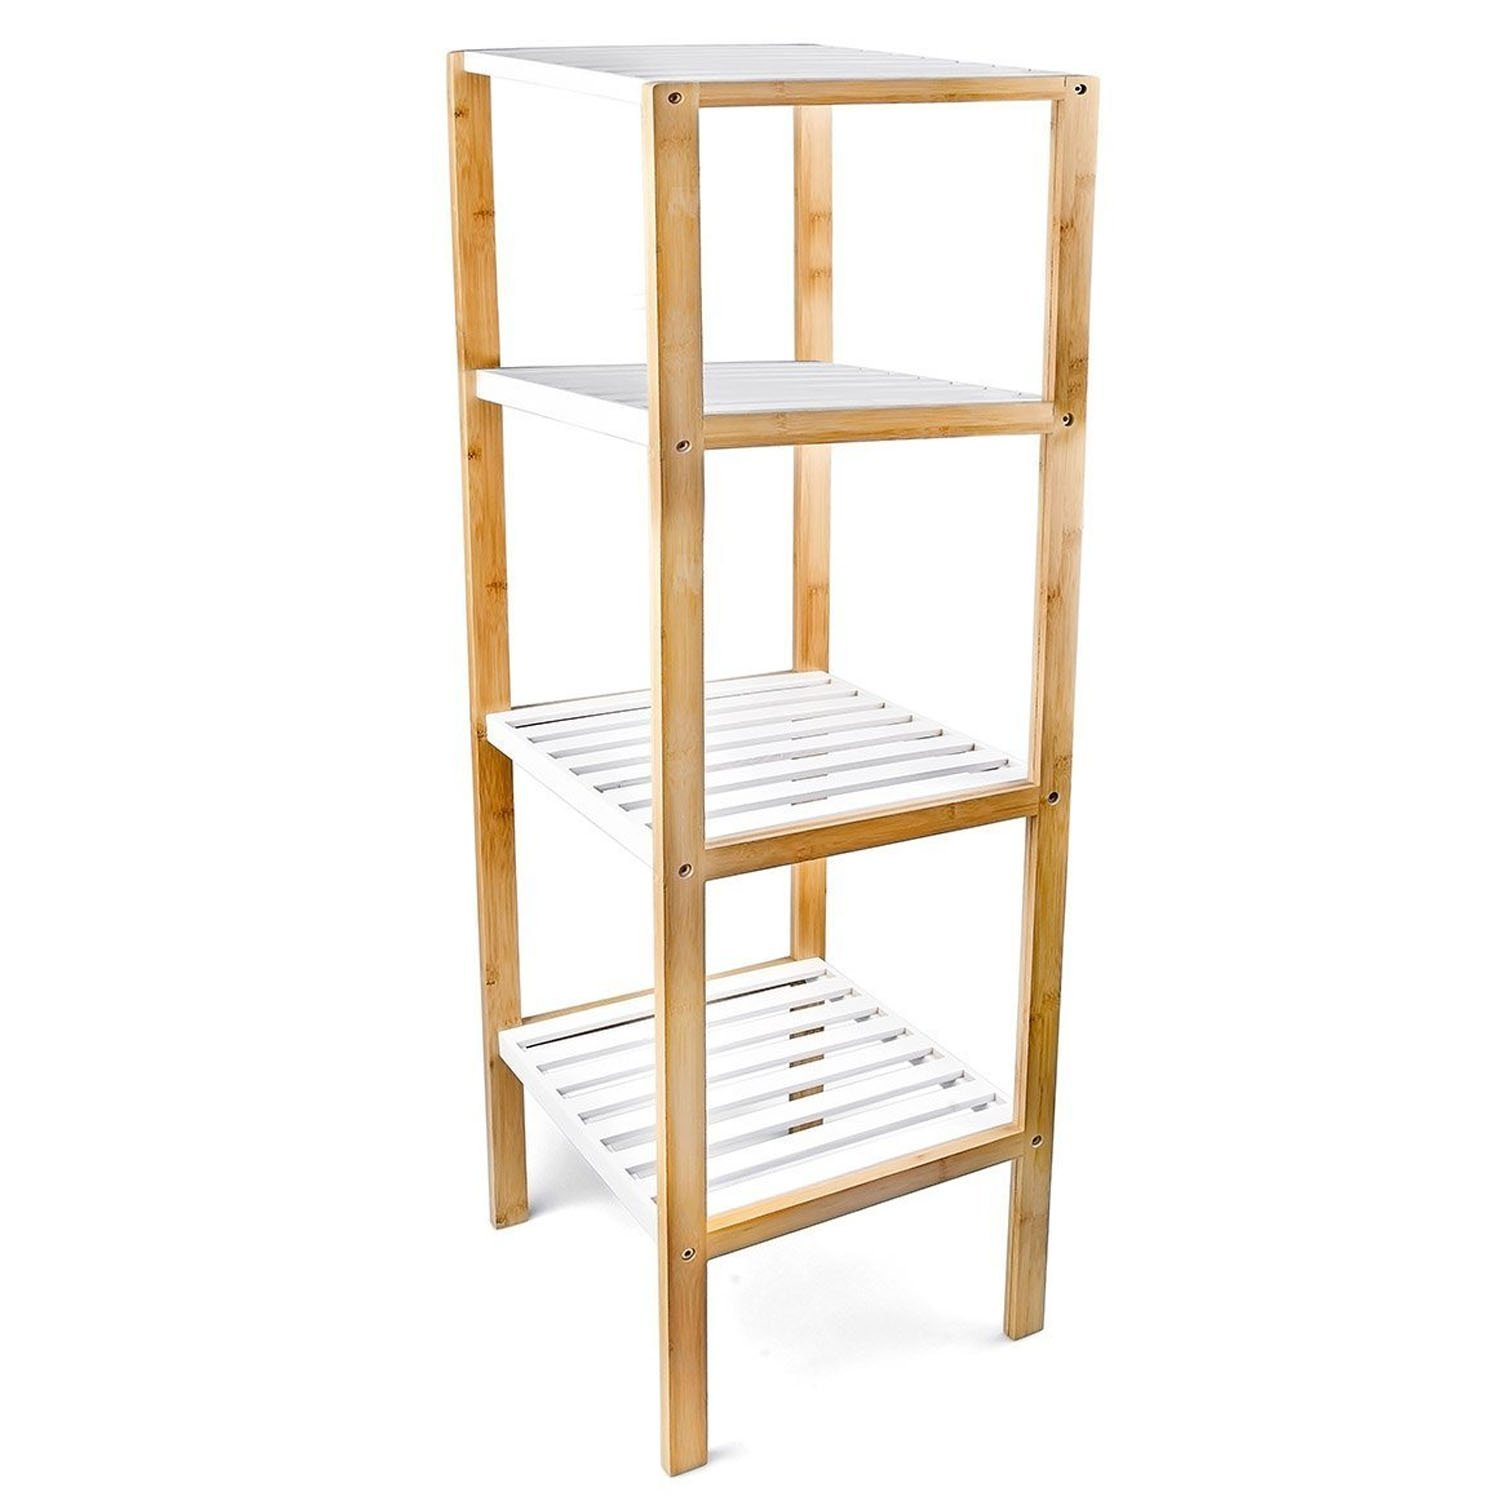 Top Home Solutions Wooden Freestanding Bamboo Storage Unit Display Shelf Shelves For Bathroom, Living Room, Hallway storage or display (3 Tier) 10067h; 10068h